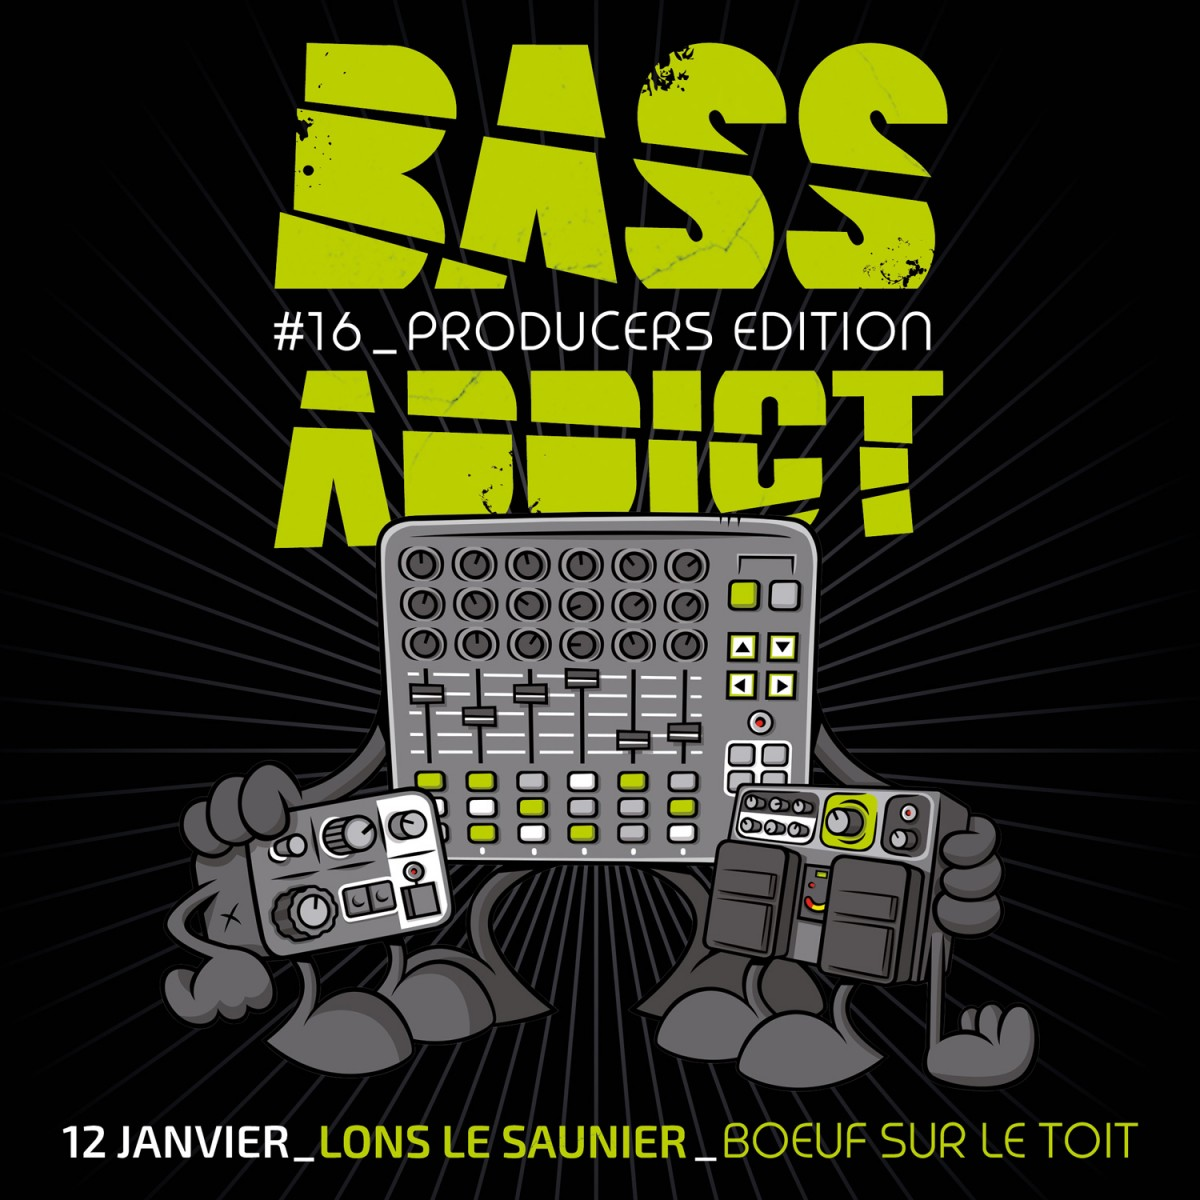 BASS ADDICT # 16 // Producers Edition